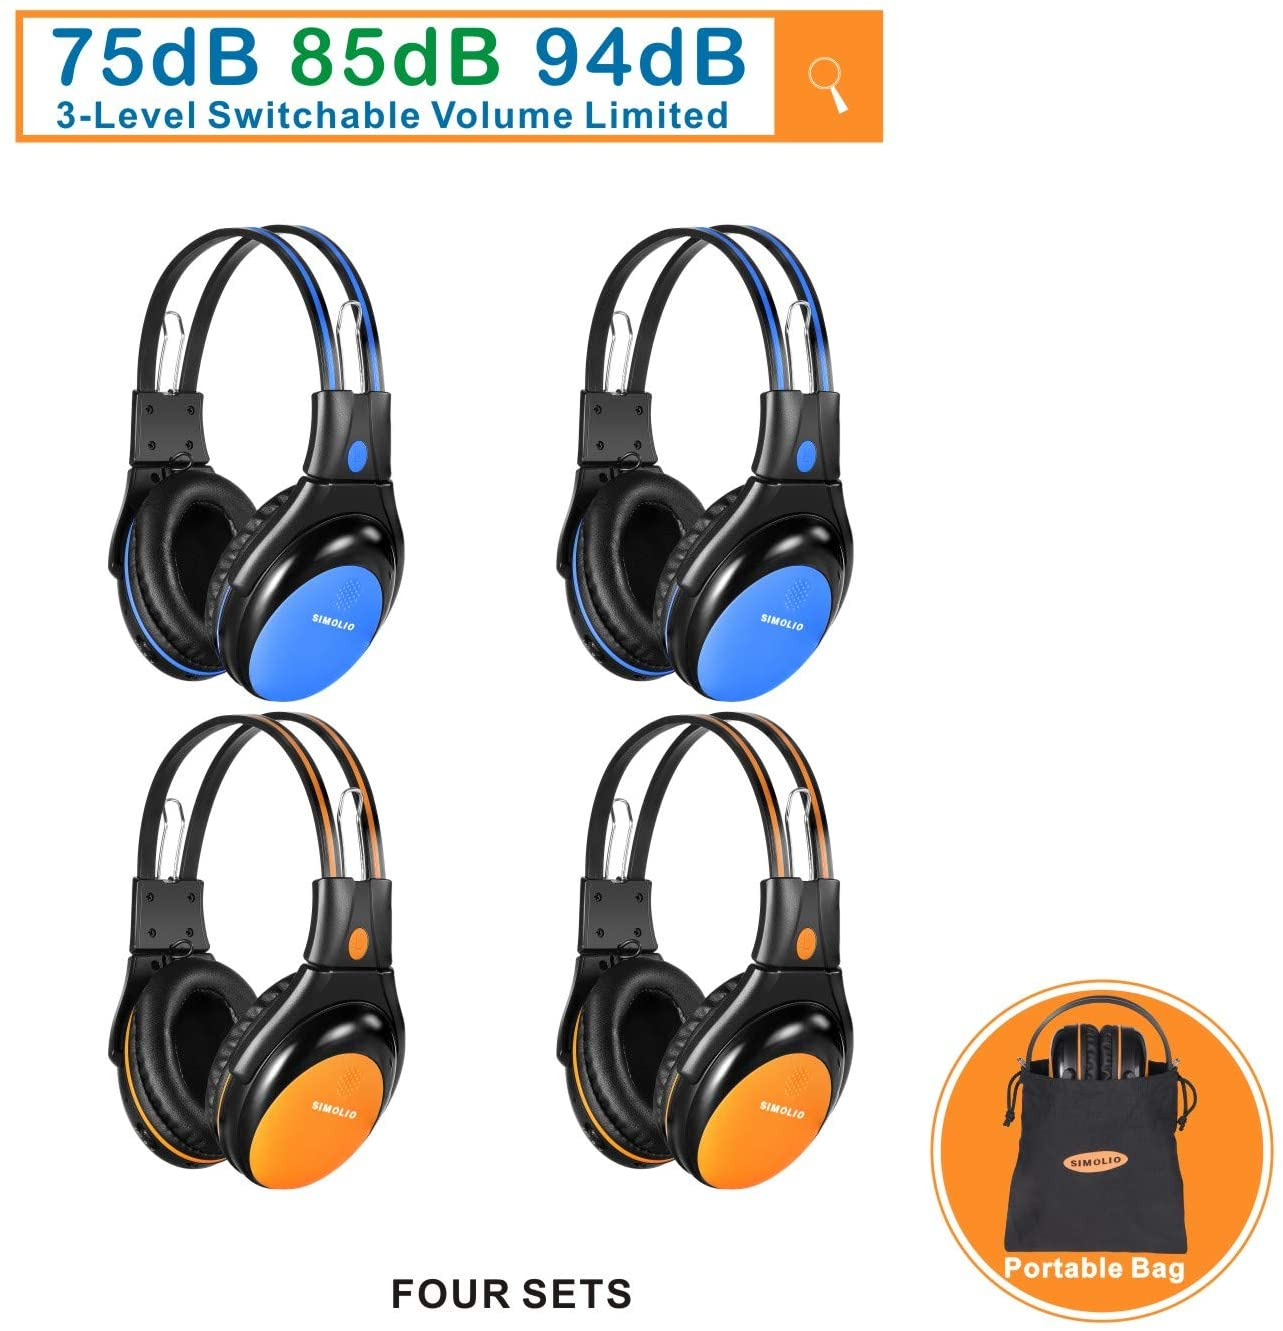 SIMOLIO 4 Pack of Car Kids Headphones with Adjustable 75-85-84dB Volume Limited, Wireless DVD Headphones, 2 Channel IR Wireless Car Headphones, Infrared Wireless Headsets for Vehicle Entertainment